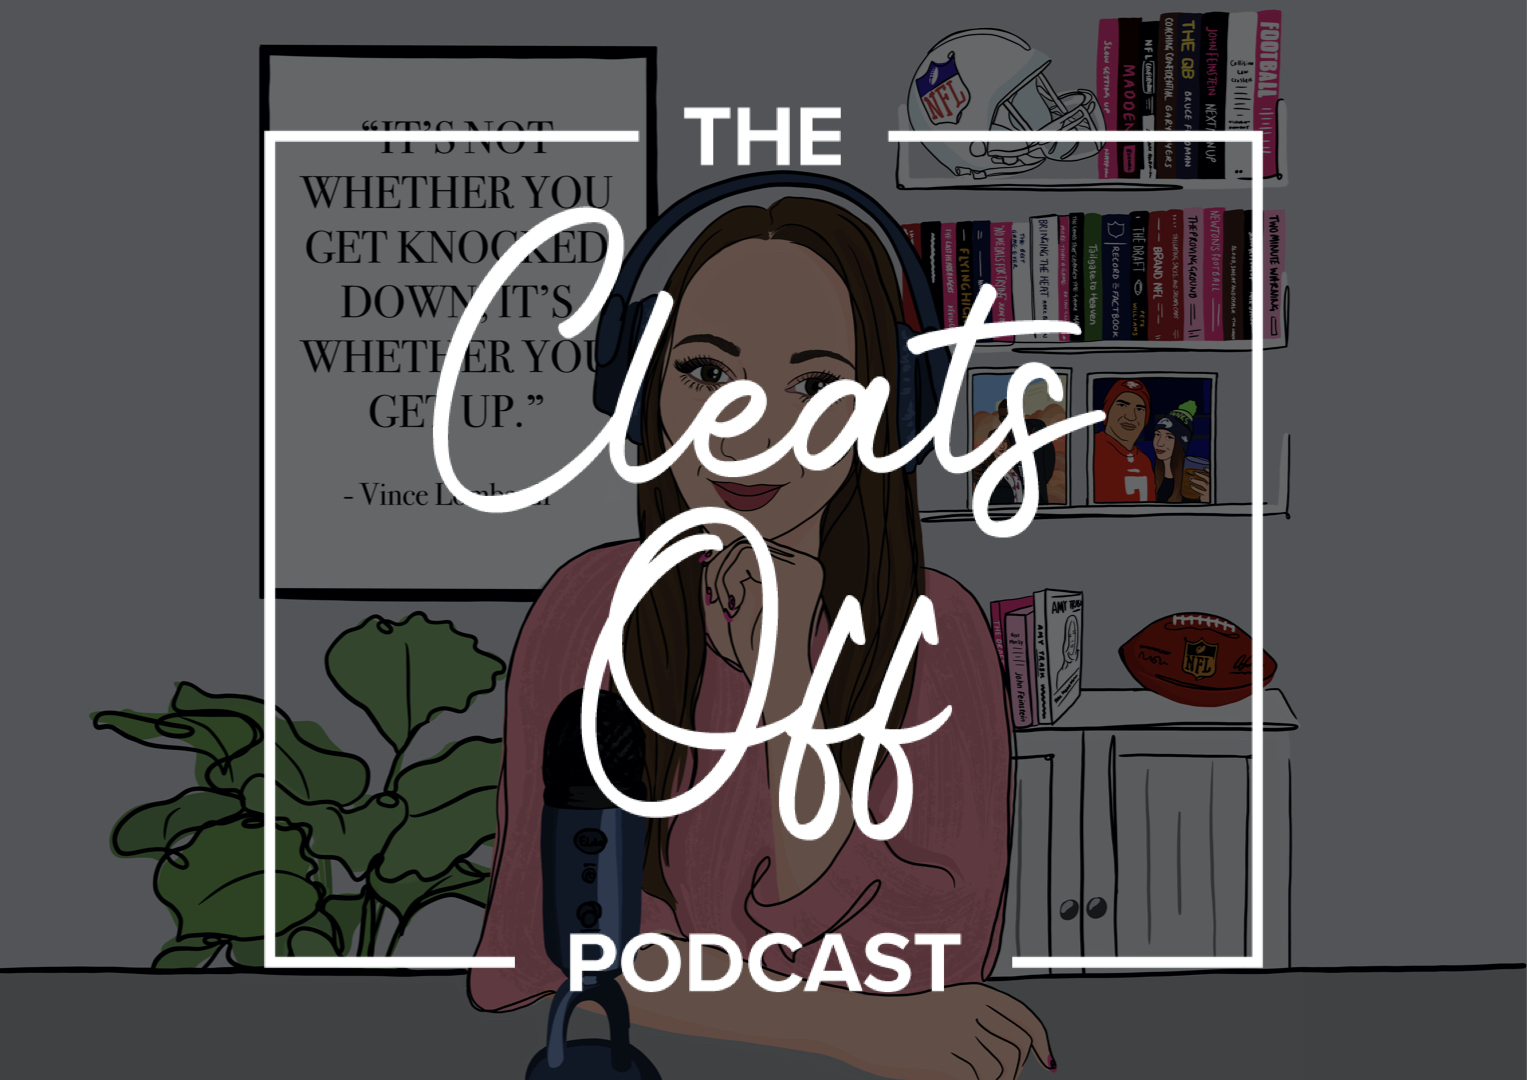 'NFLGirlUK meets' changes its name to 'The Cleats Off Podcast'.